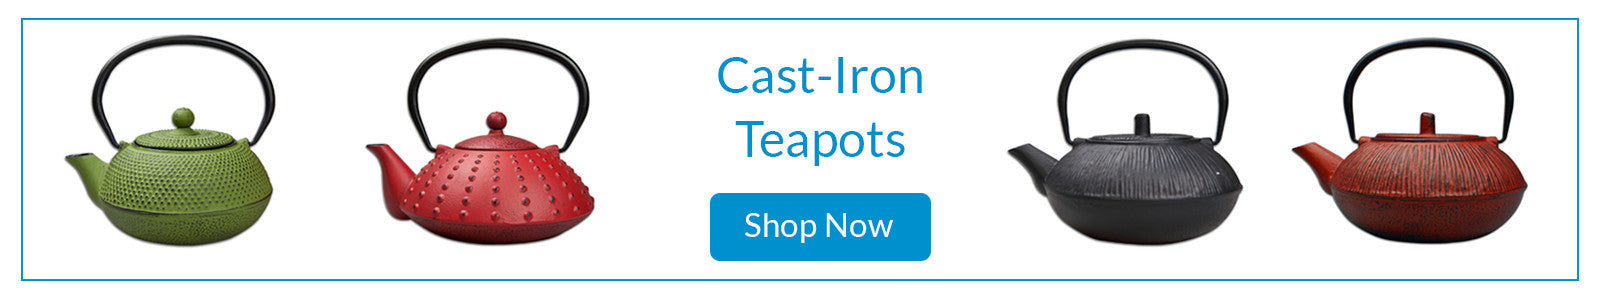 Cast-iron traditional Eastern Teapots